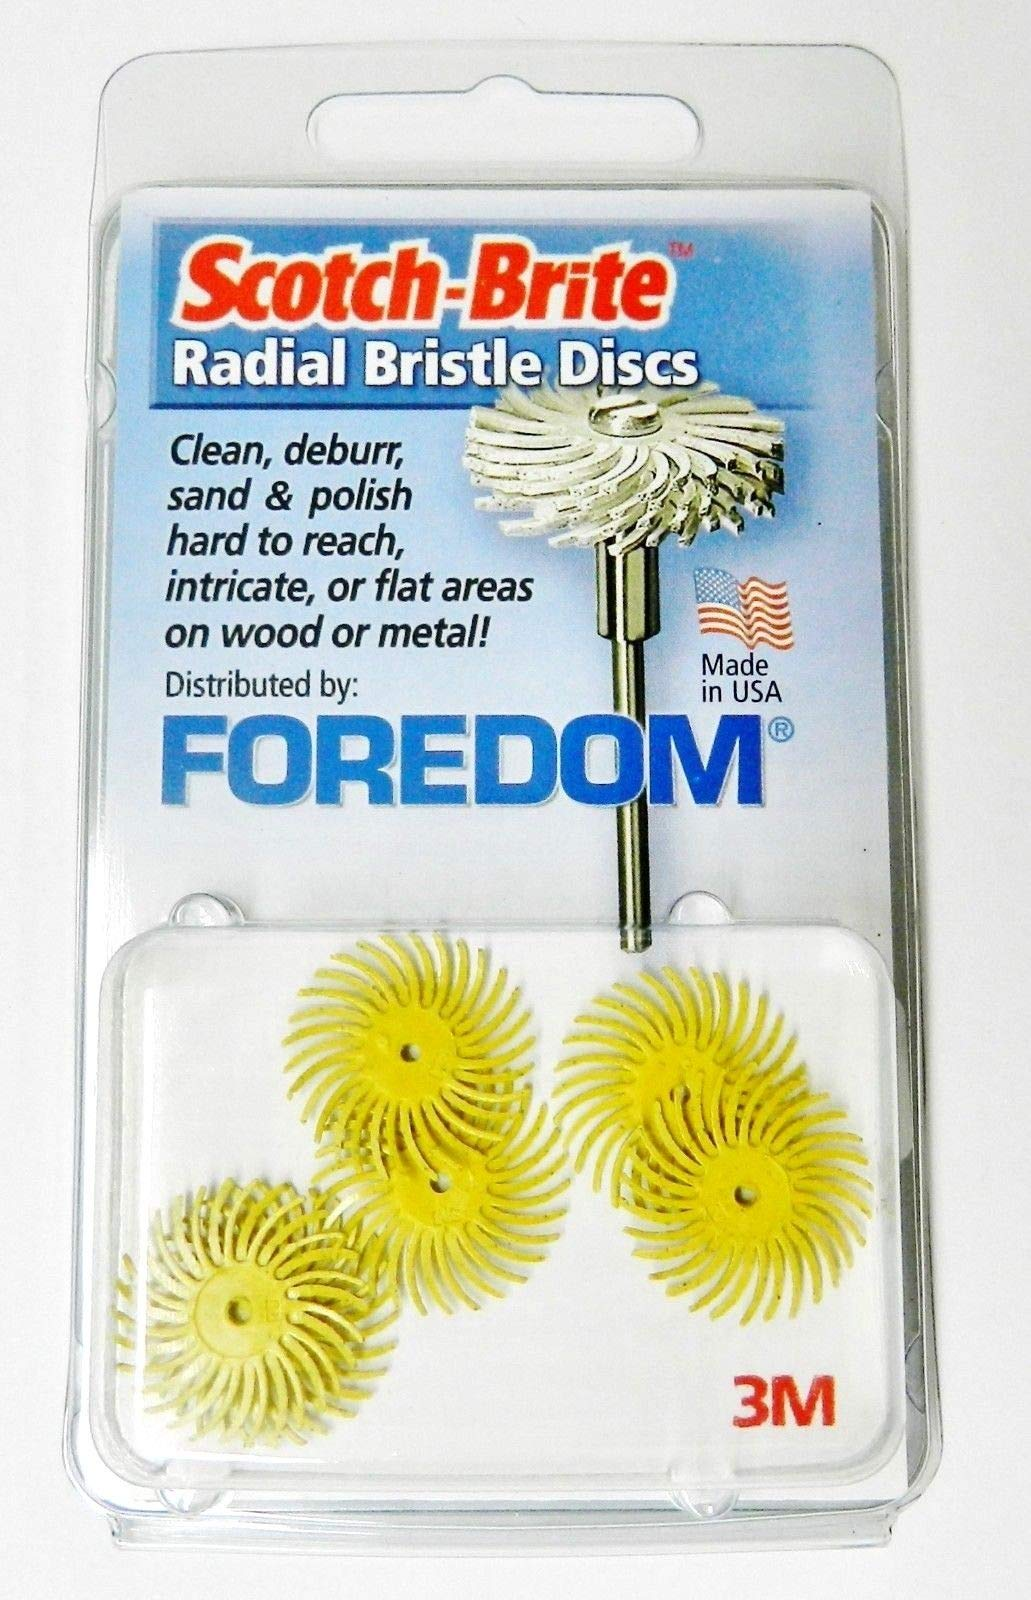 Foredom Radial Bristle Discs 80 Grit Yellow 3/4'' - Pack of 6 3M Radial Brushes by Foredom